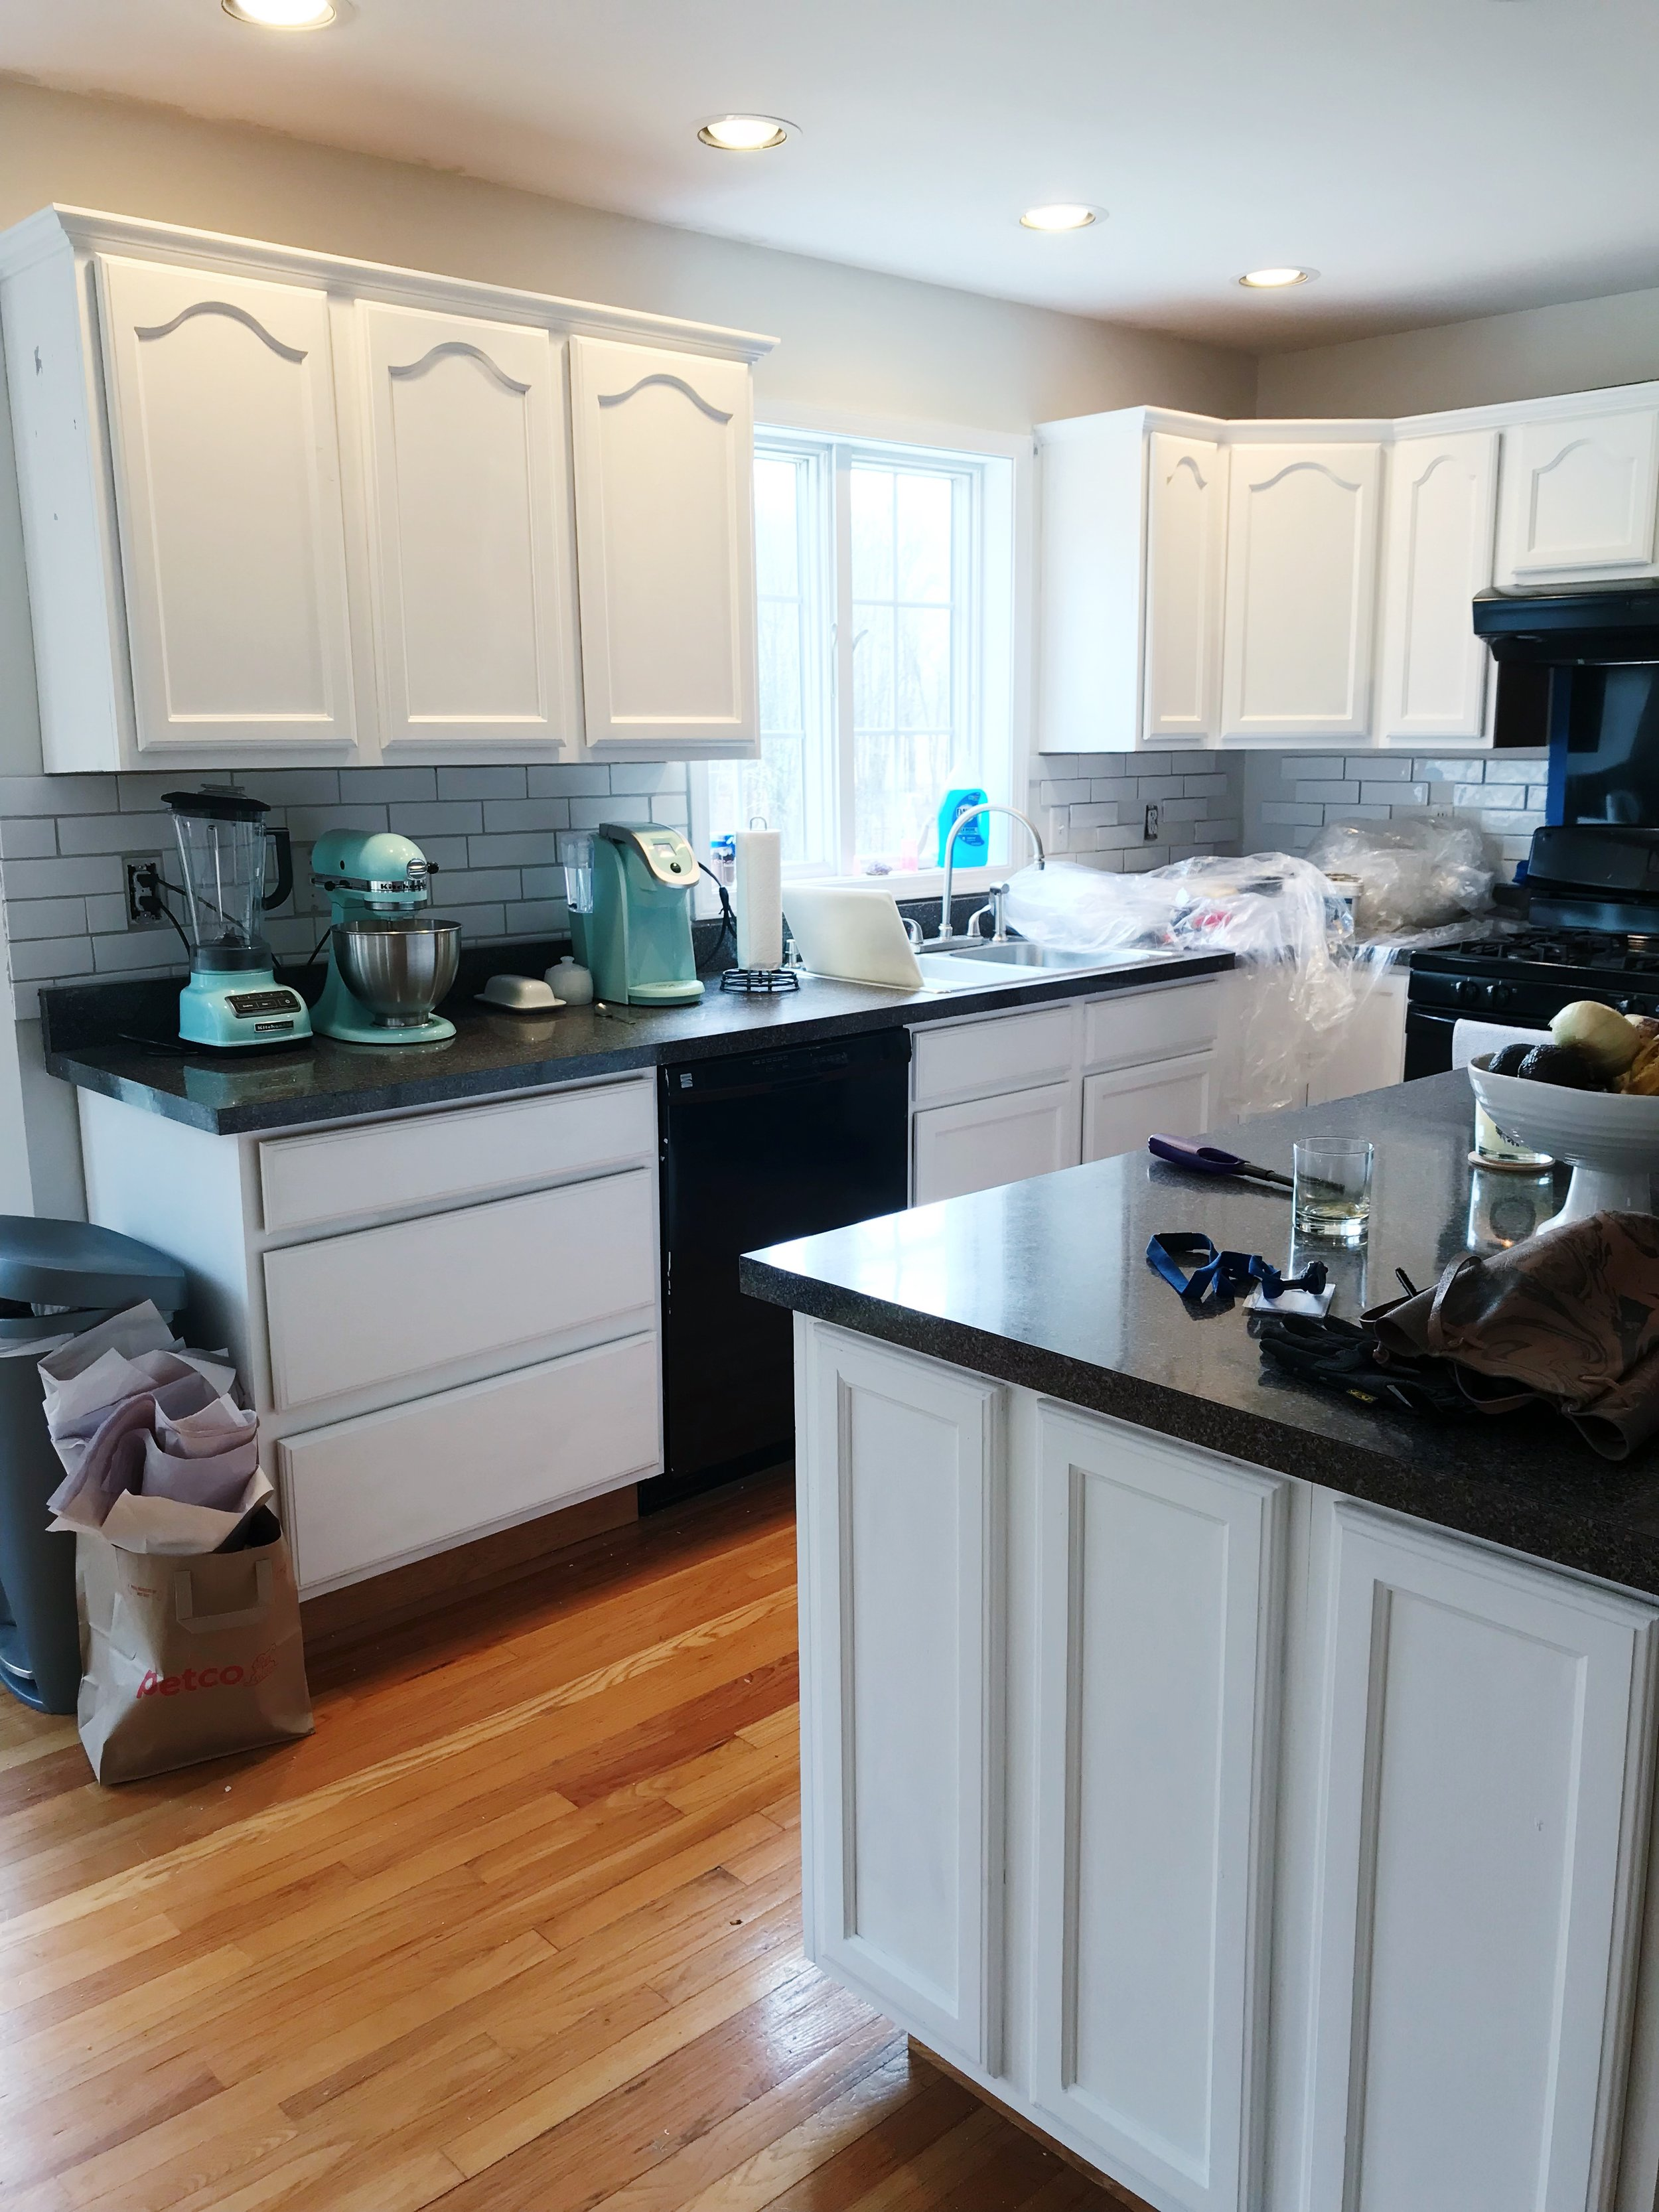 How To Paint Kitchen Cabinets With Chalk Paint